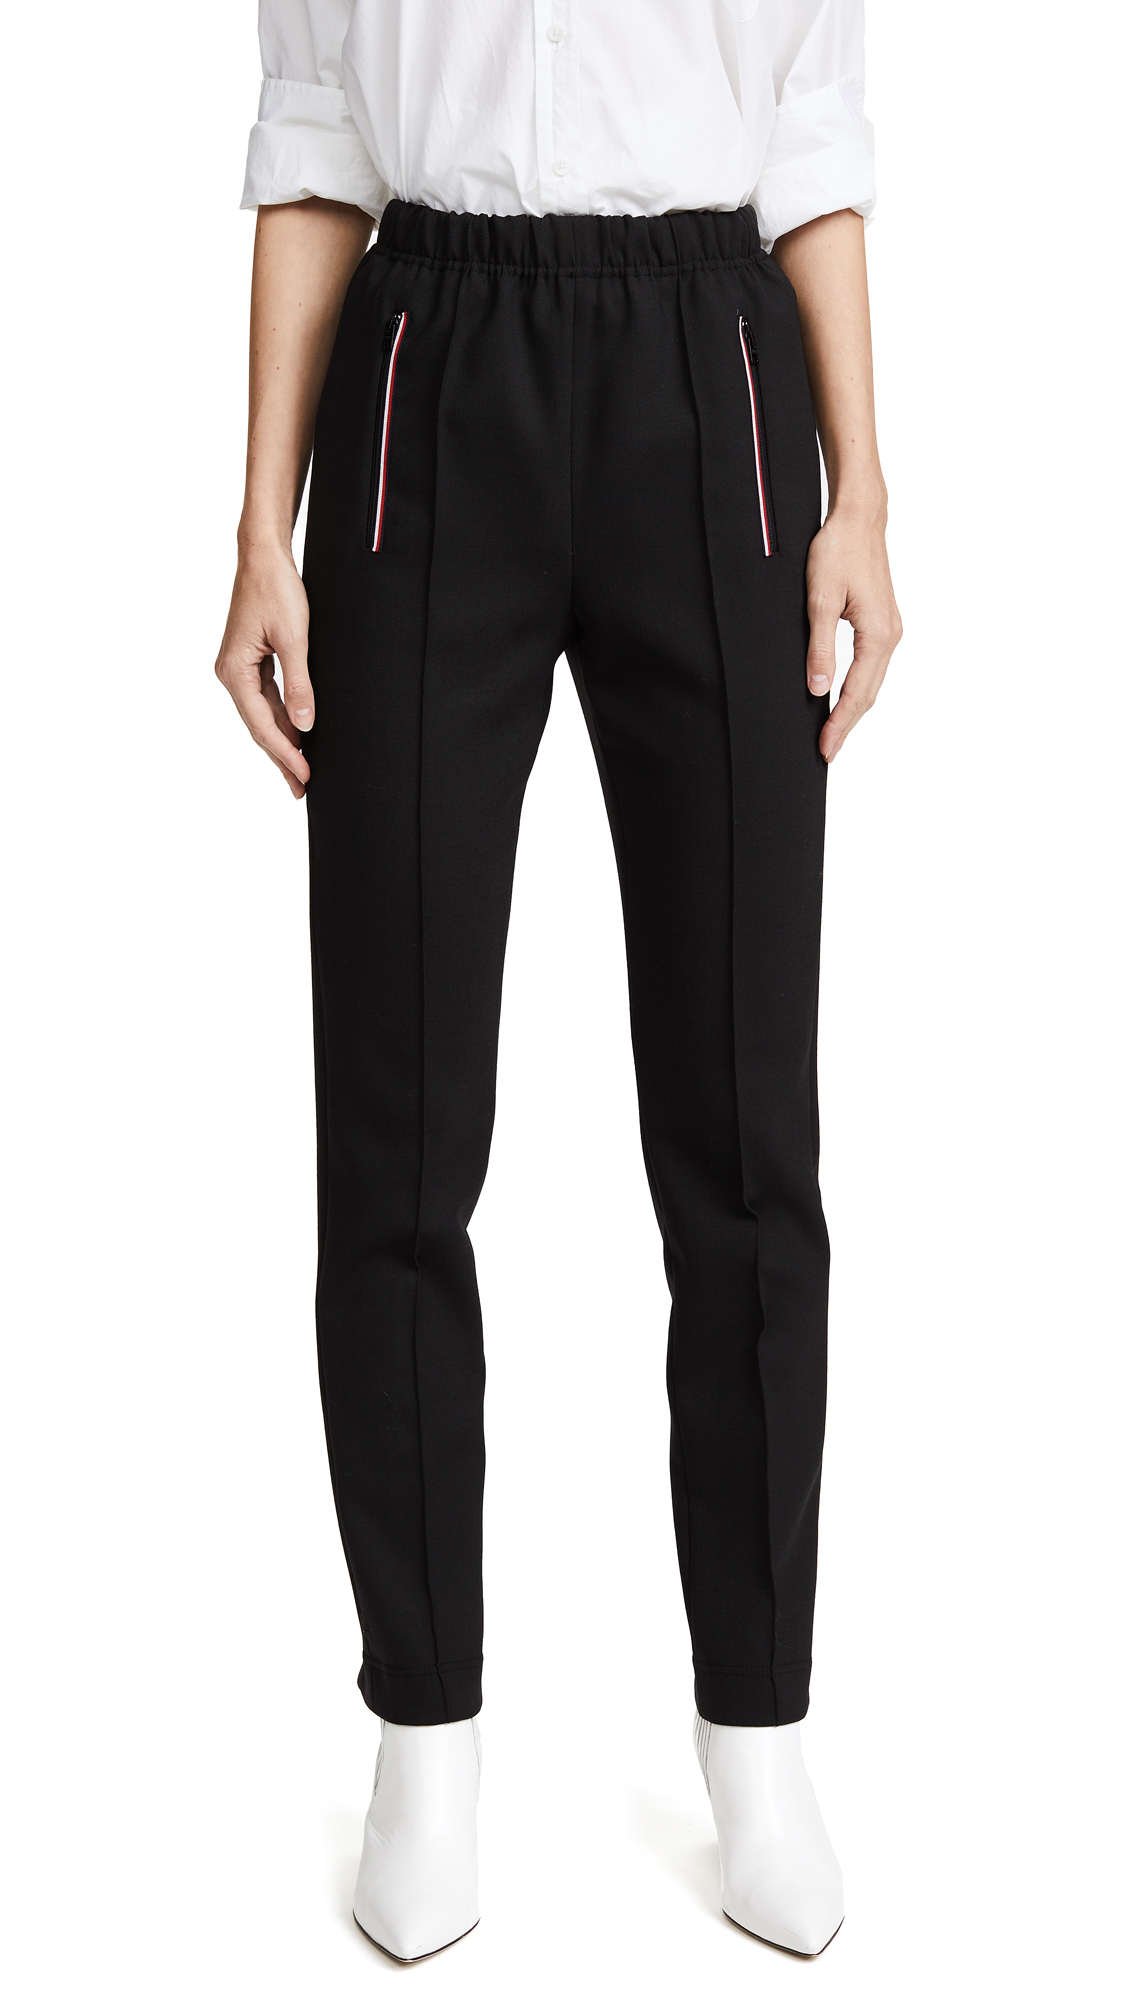 Hilfiger Collection Sporty Chic Pants - Meteorite